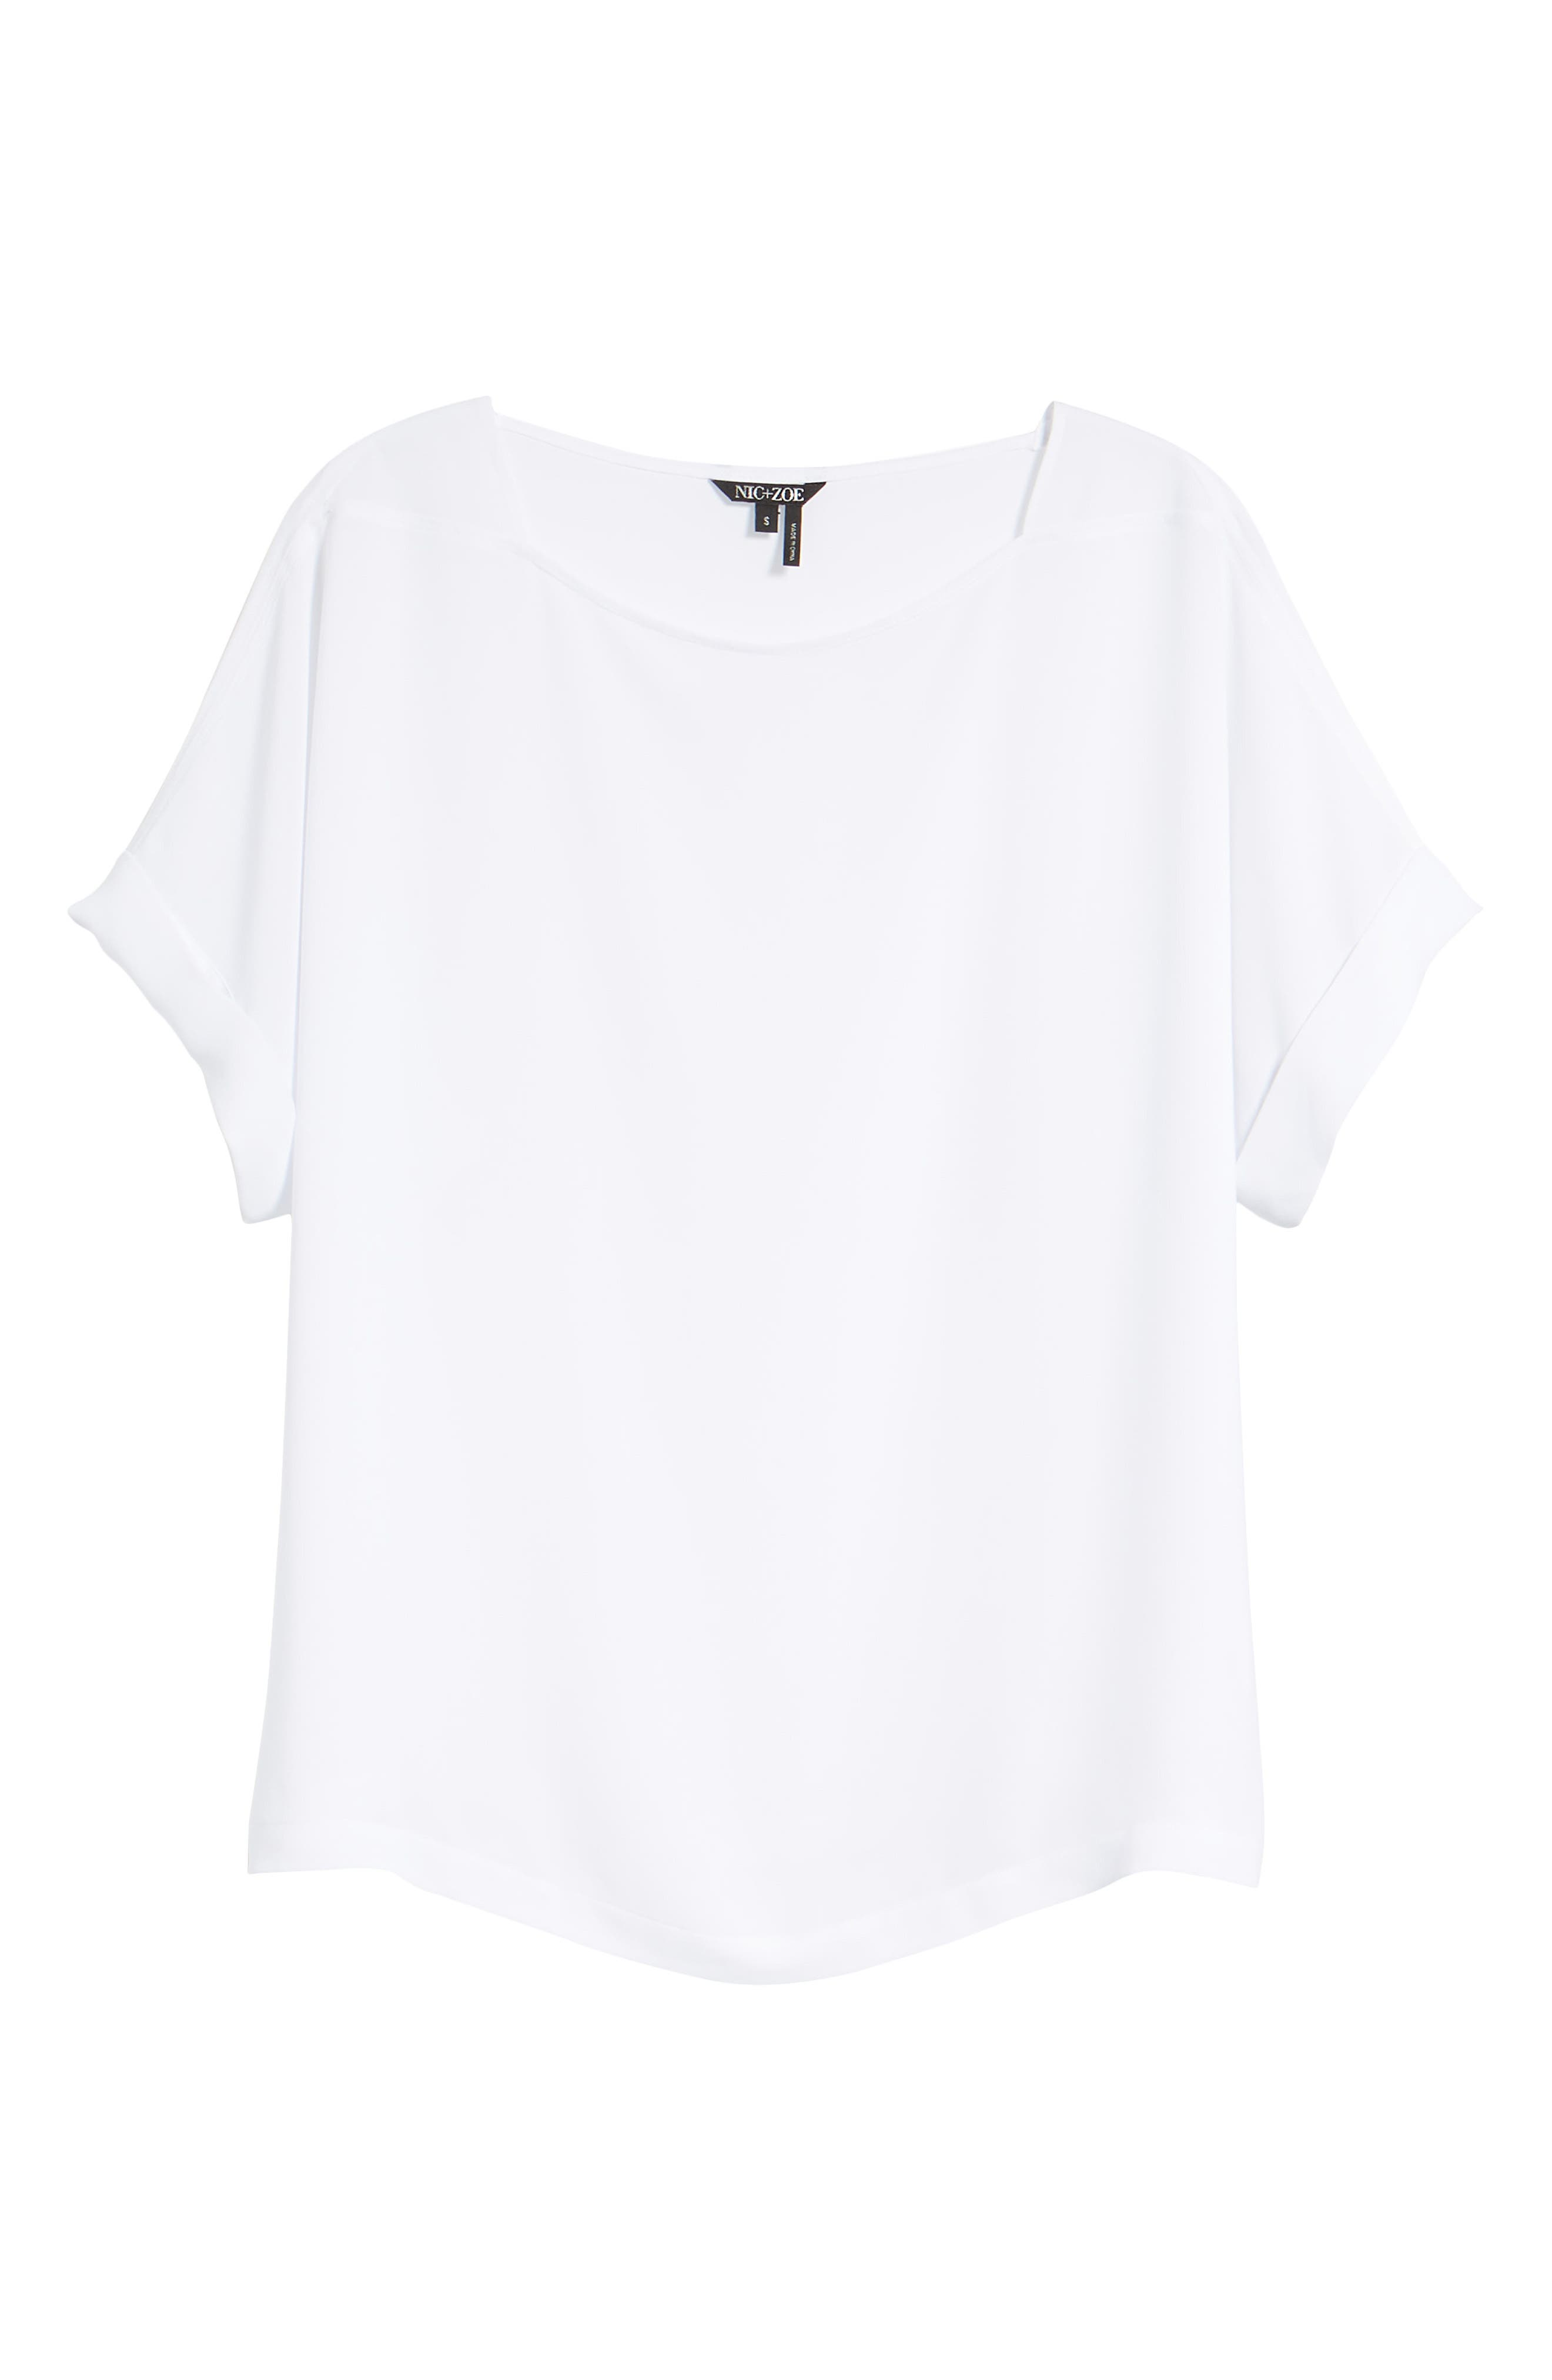 NIC + ZOE Moroccan Tee,                             Main thumbnail 1, color,                             Paper White